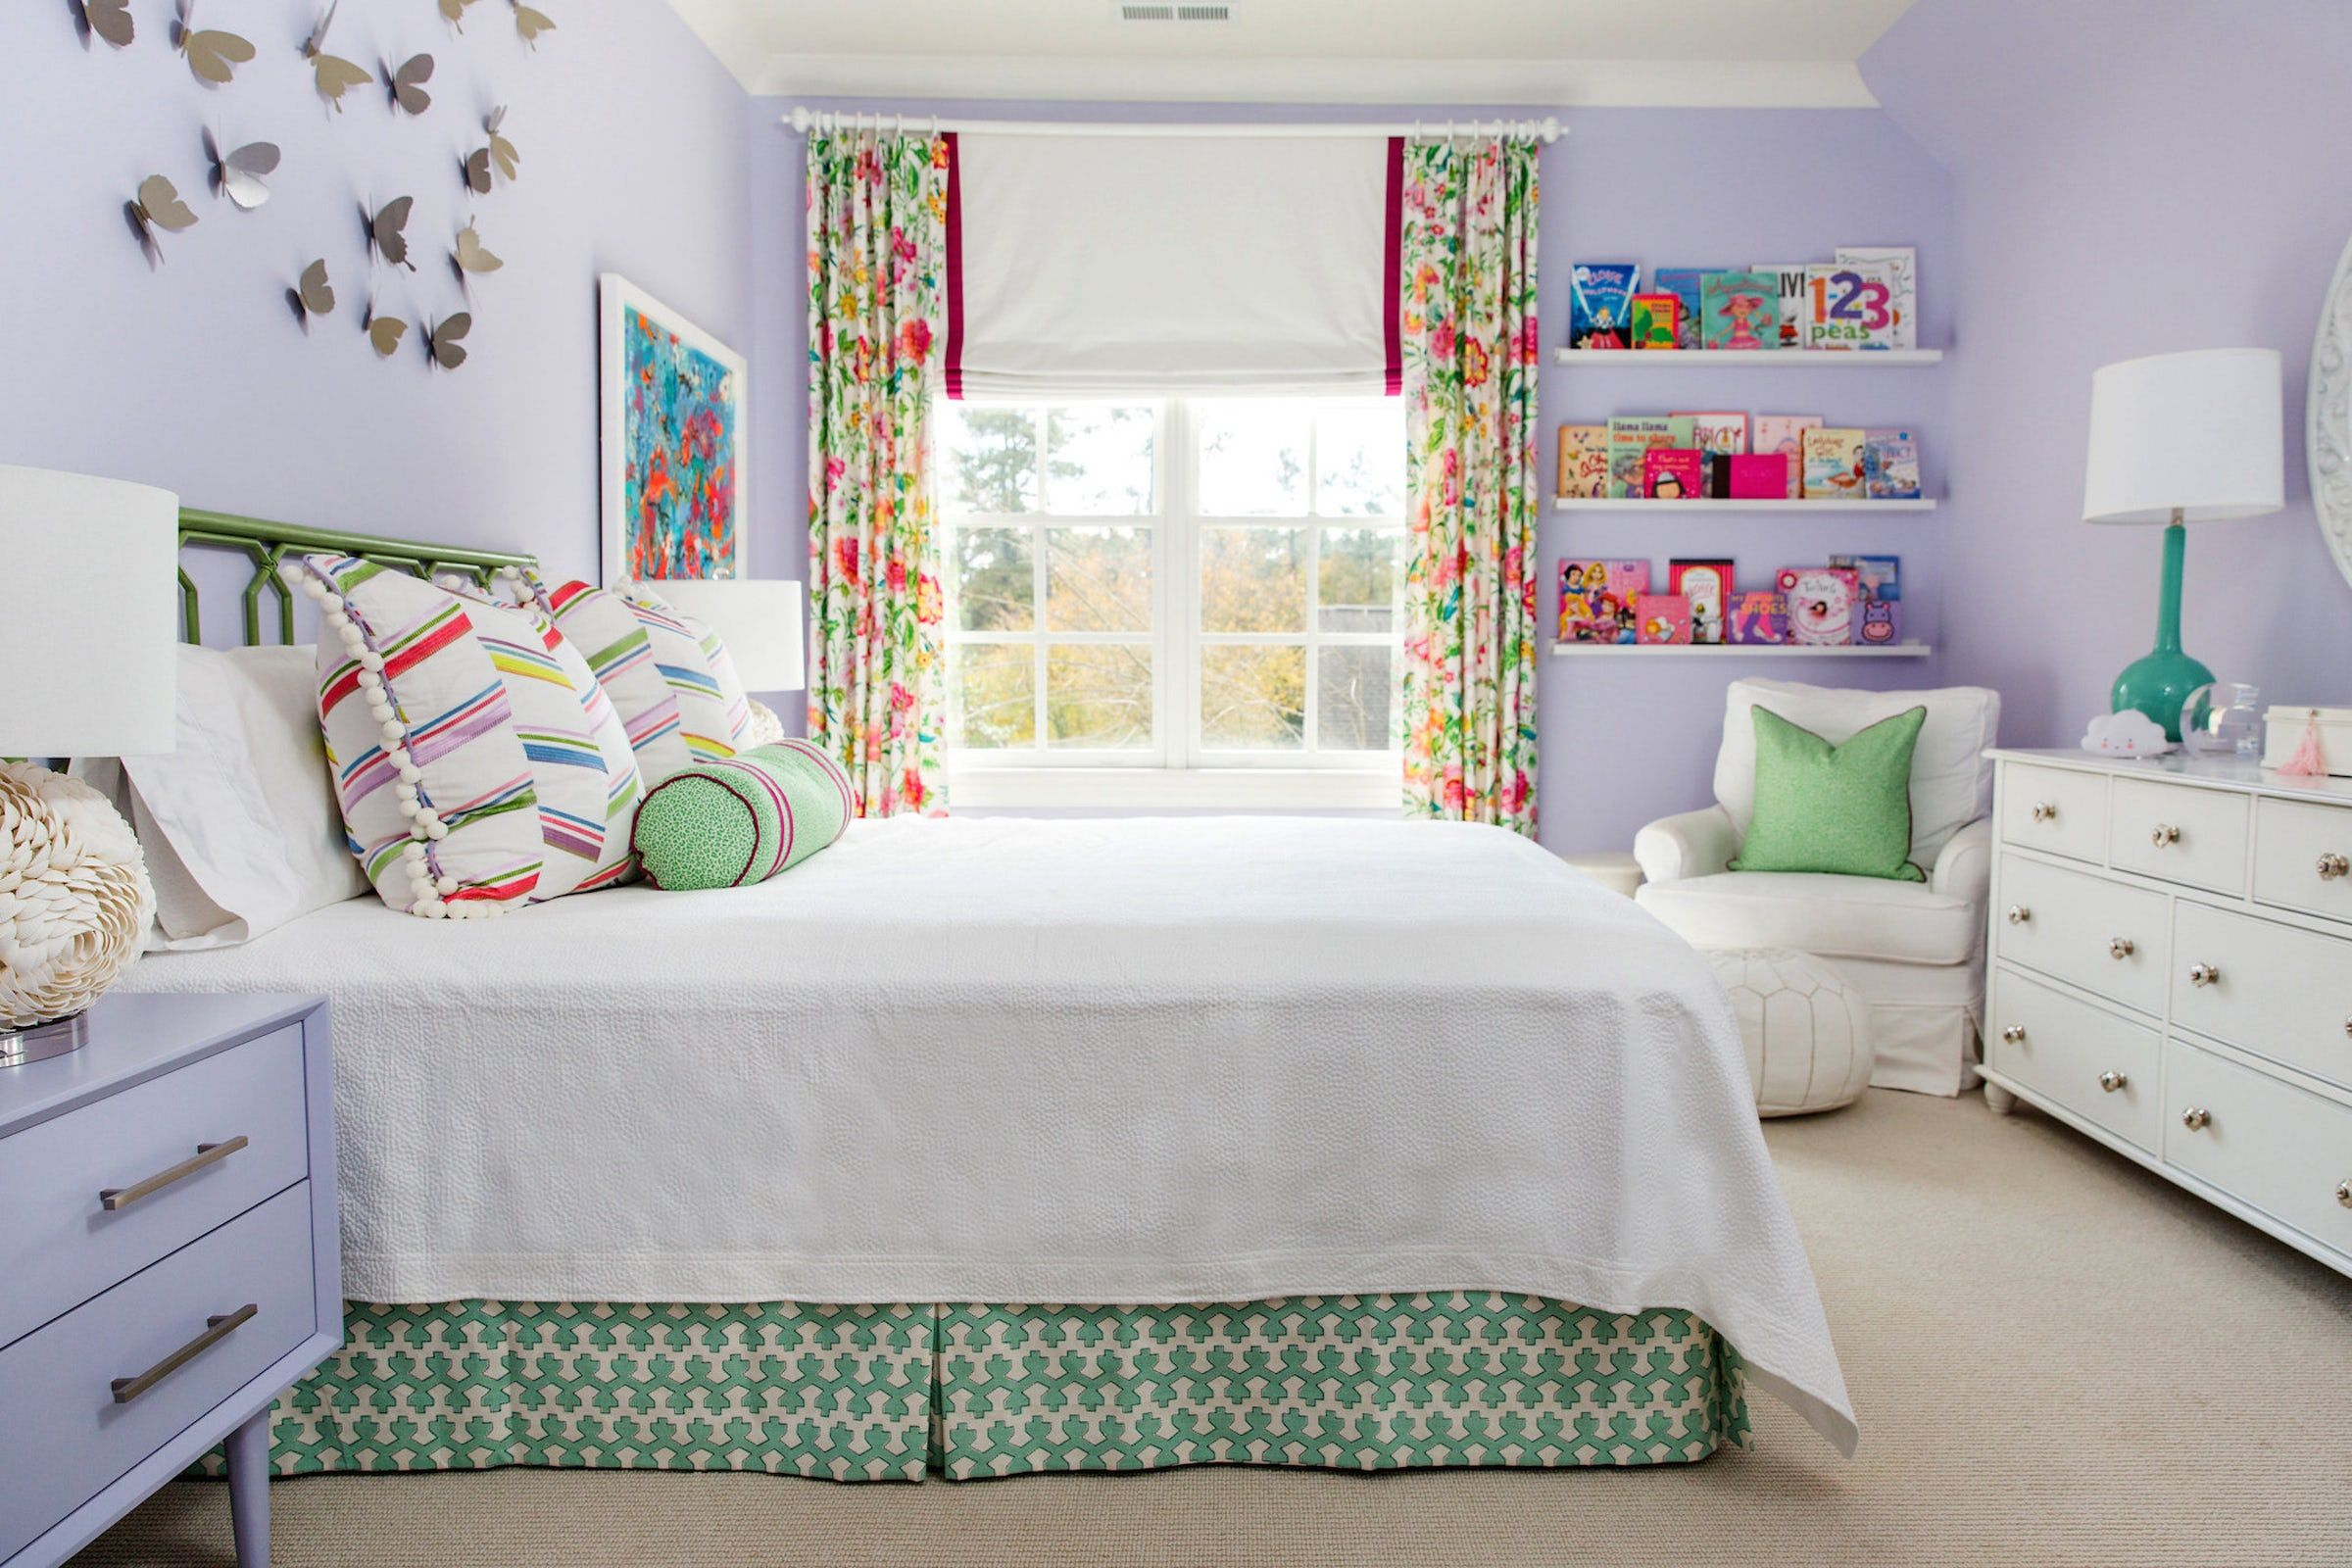 15 creative girls room ideas how to decorate a girl\u0027s bedroom15 creative bedroom decorating ideas for girls